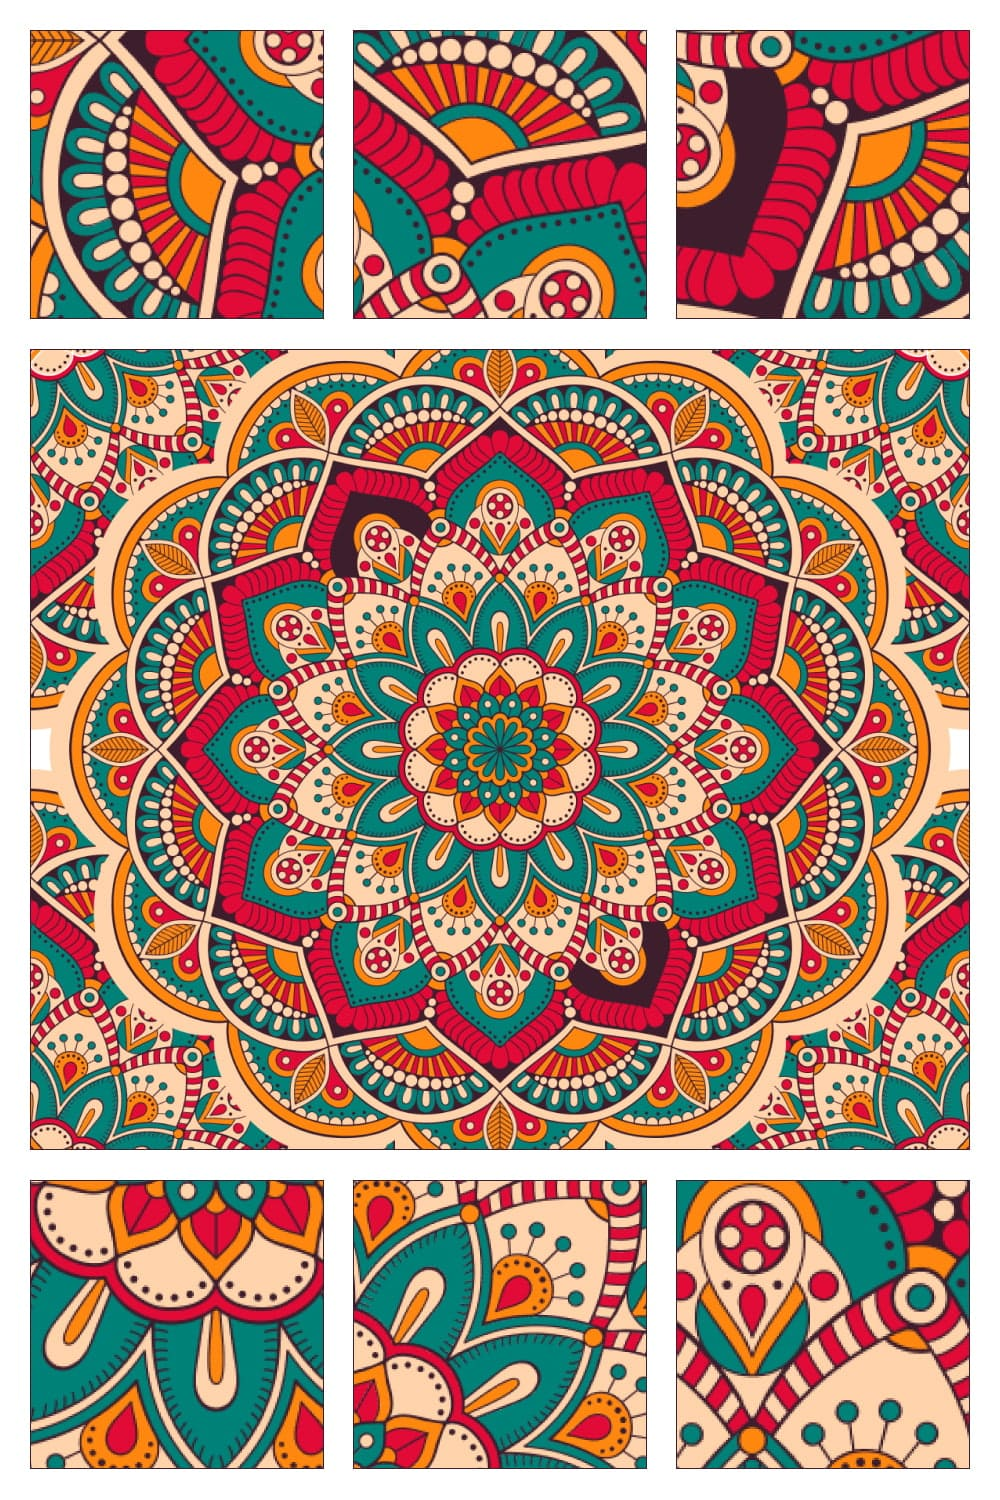 A rich and luxurious mandala created from other mandalas.